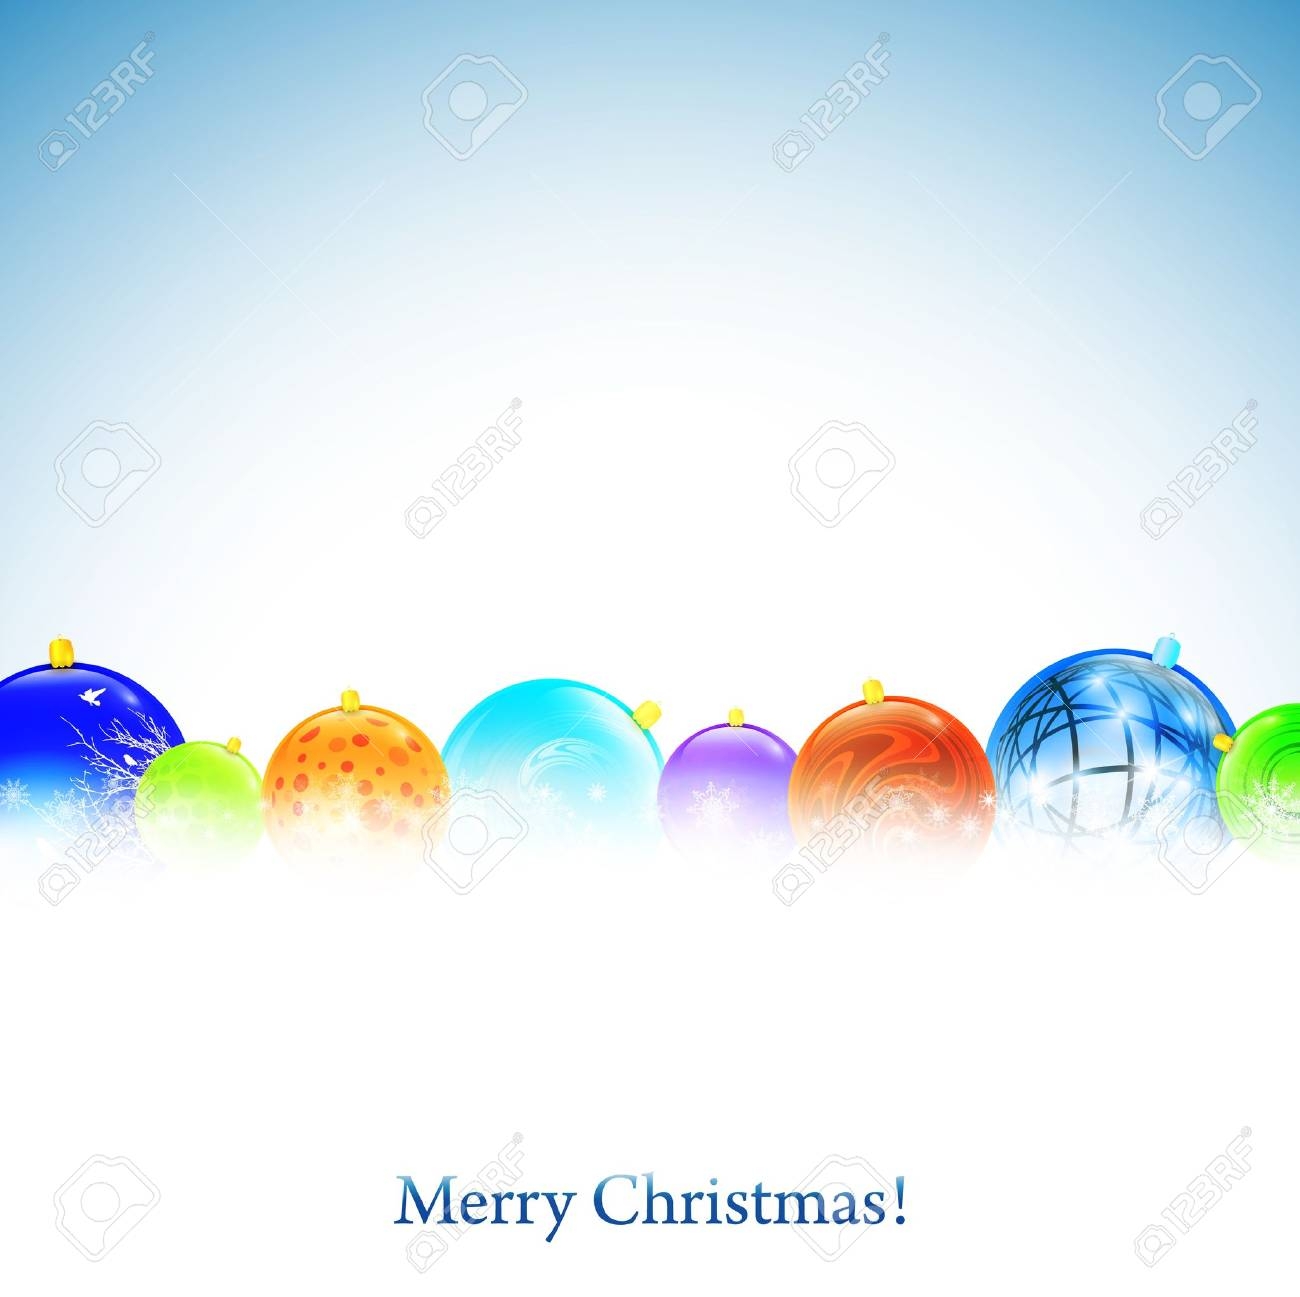 Christmas background with New year decorative balls and copyspace - 10836098